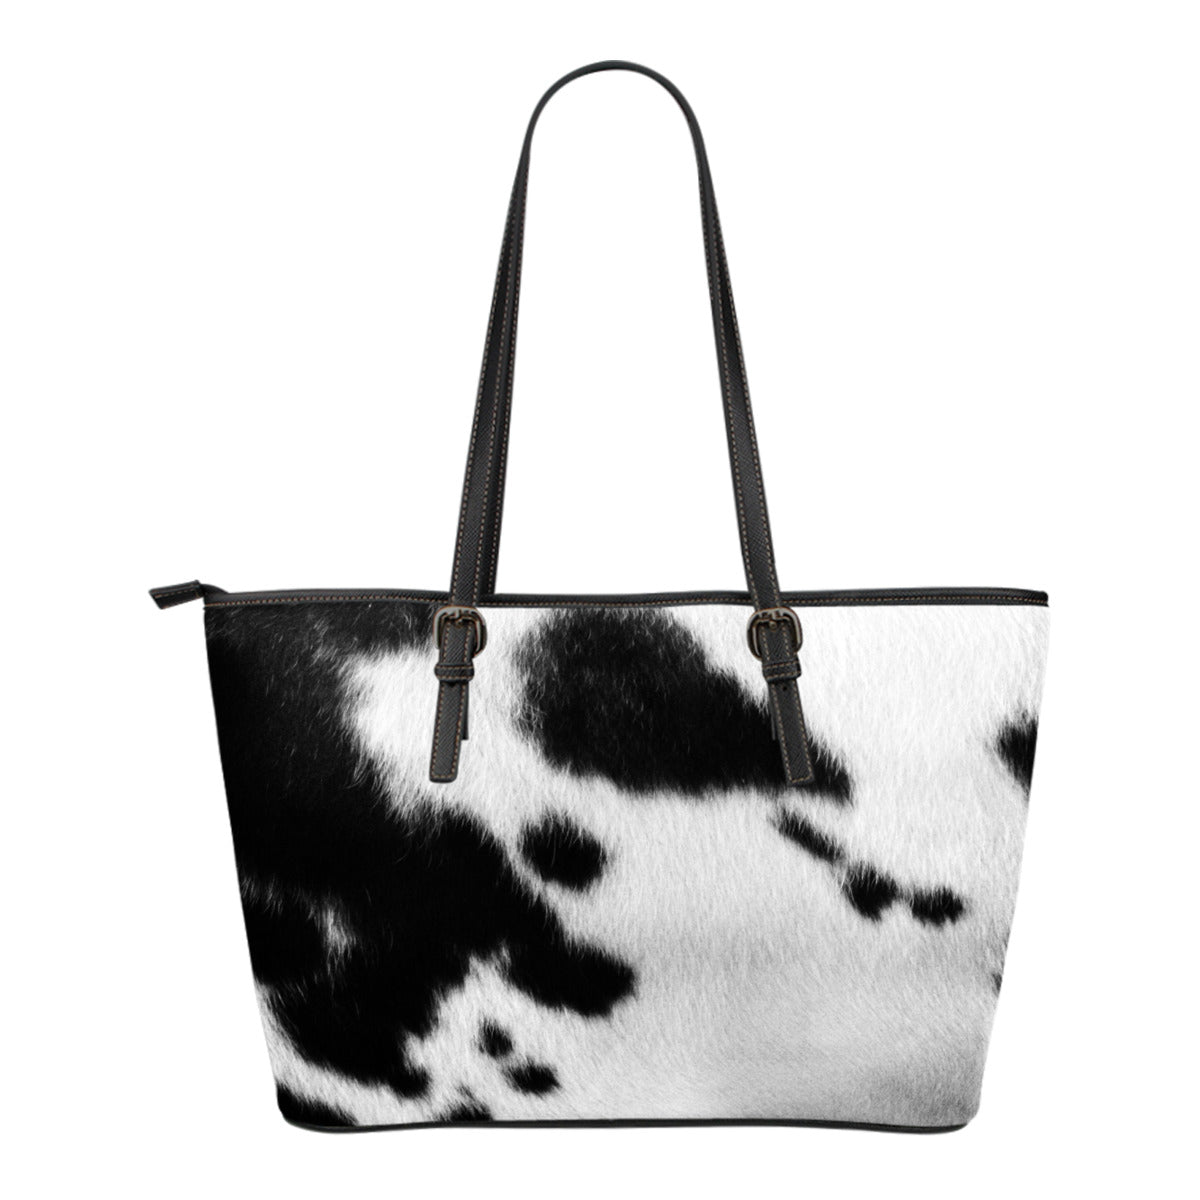 Animal Skin Texture Themed Design C5 Women Small Leather Tote Bag